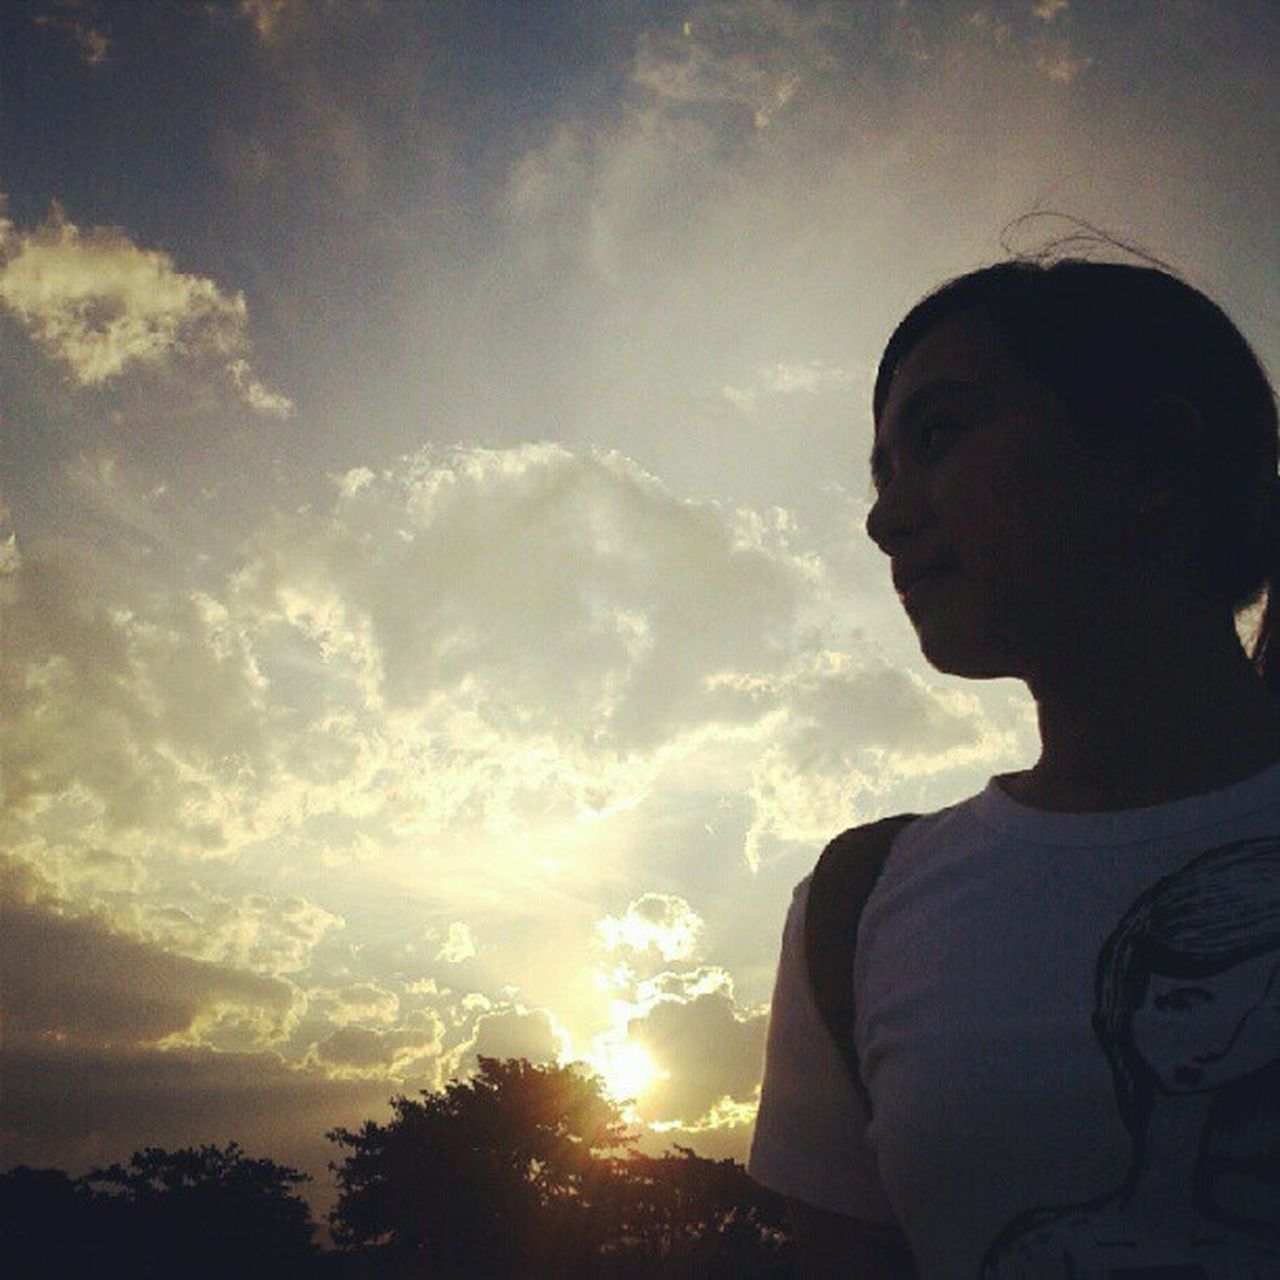 sky, cloud - sky, sunset, low angle view, outdoors, statue, nature, one person, day, tree, beauty in nature